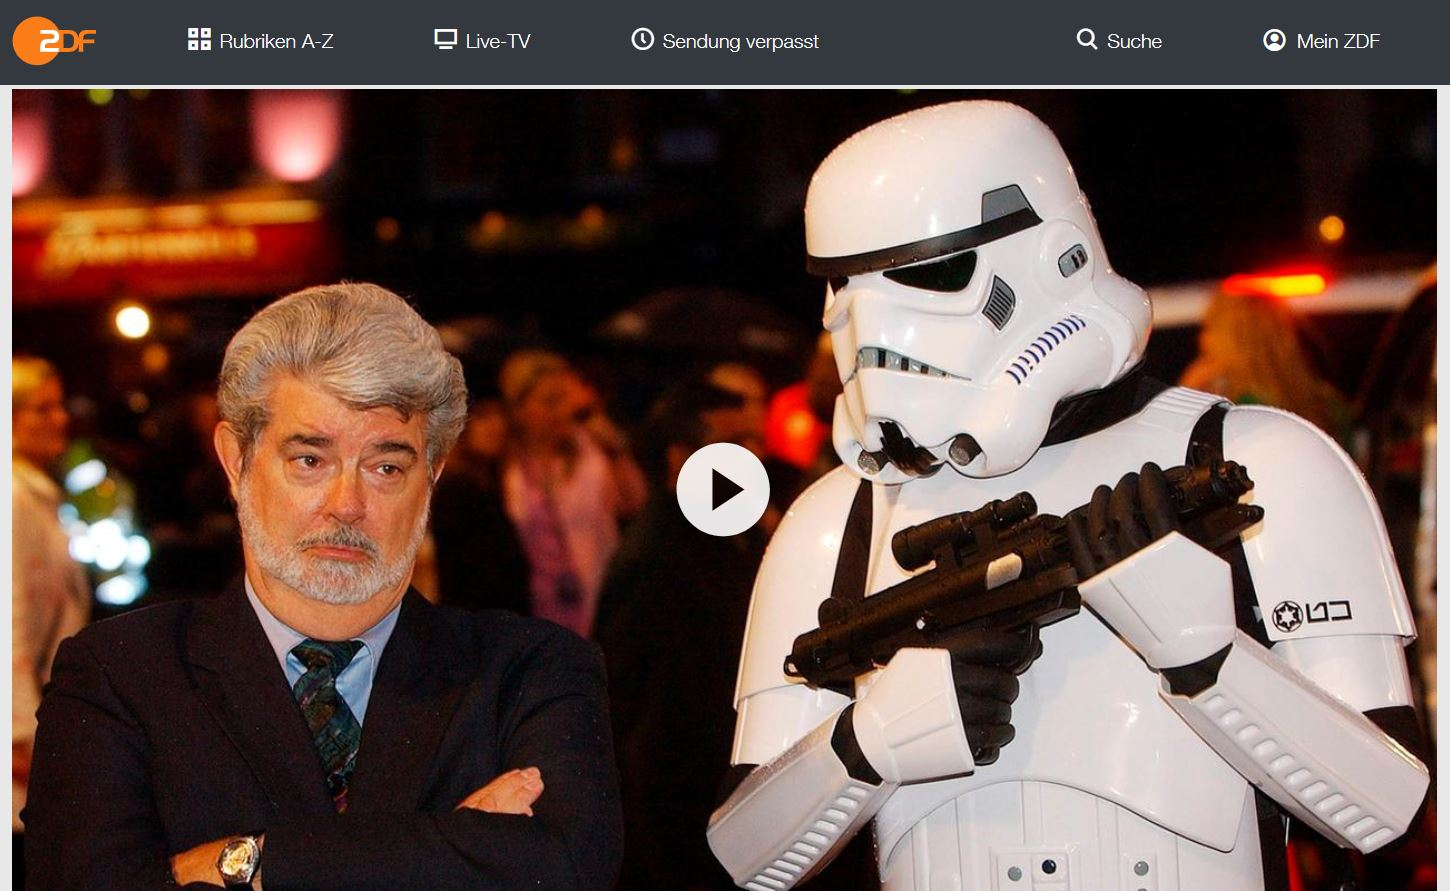 ZDF-Doku: Die Science-Fiction-Propheten - George Lucas und Star Wars